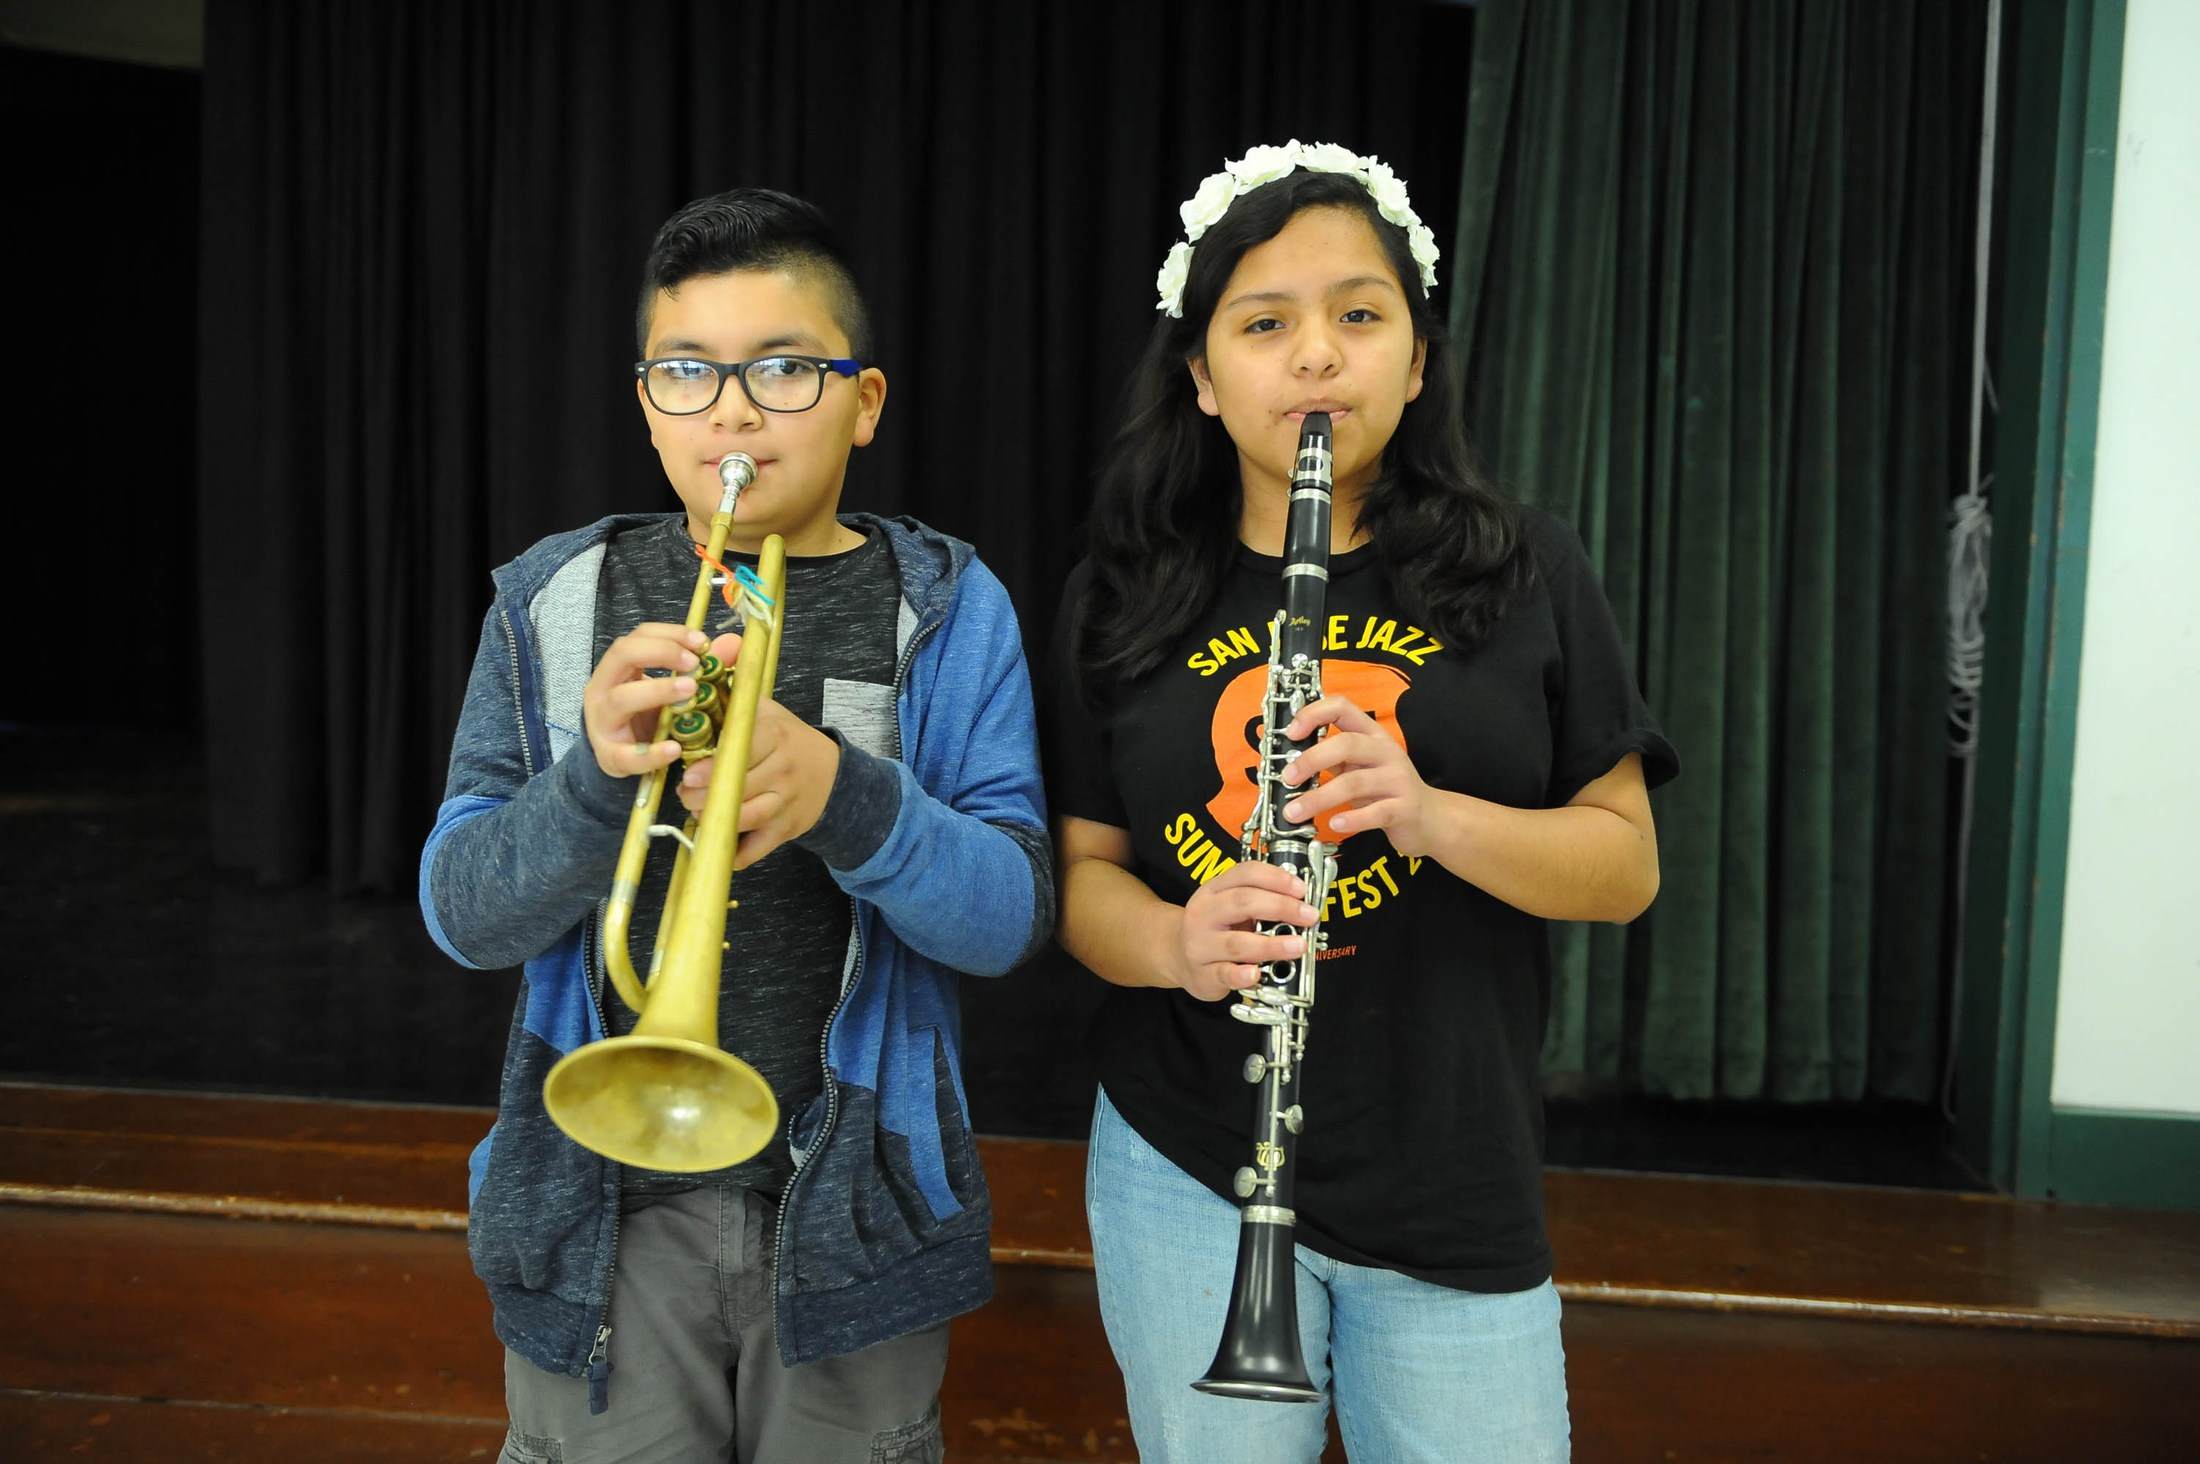 students playing their clarinet and trumpet